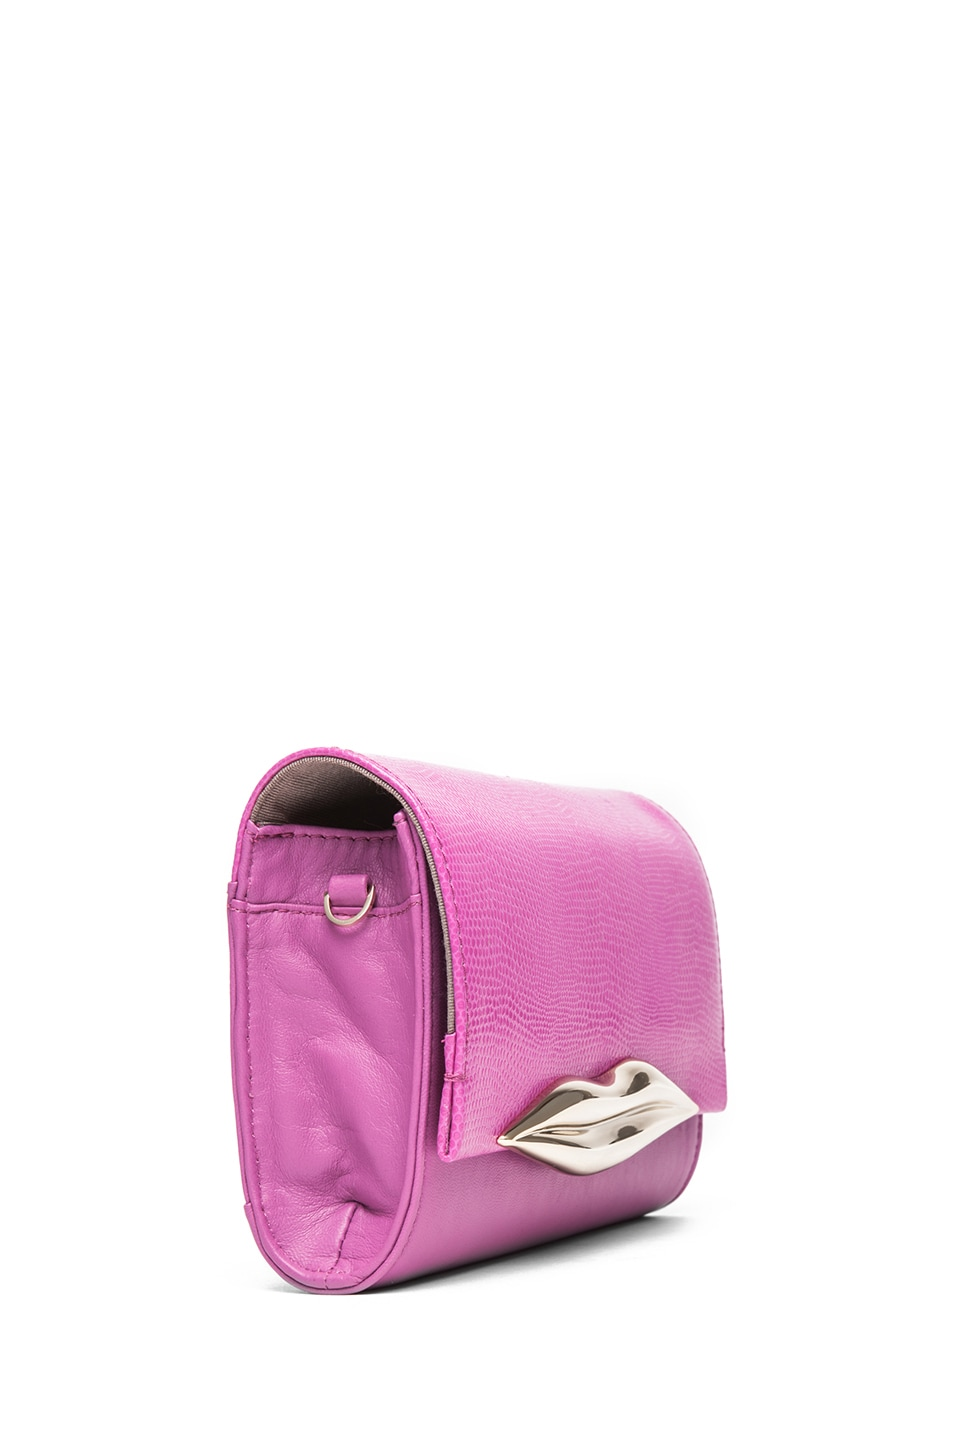 Image 3 of Diane von Furstenberg Mini Lips Embossed Lizard Leather Bag in Pink Fuchsia